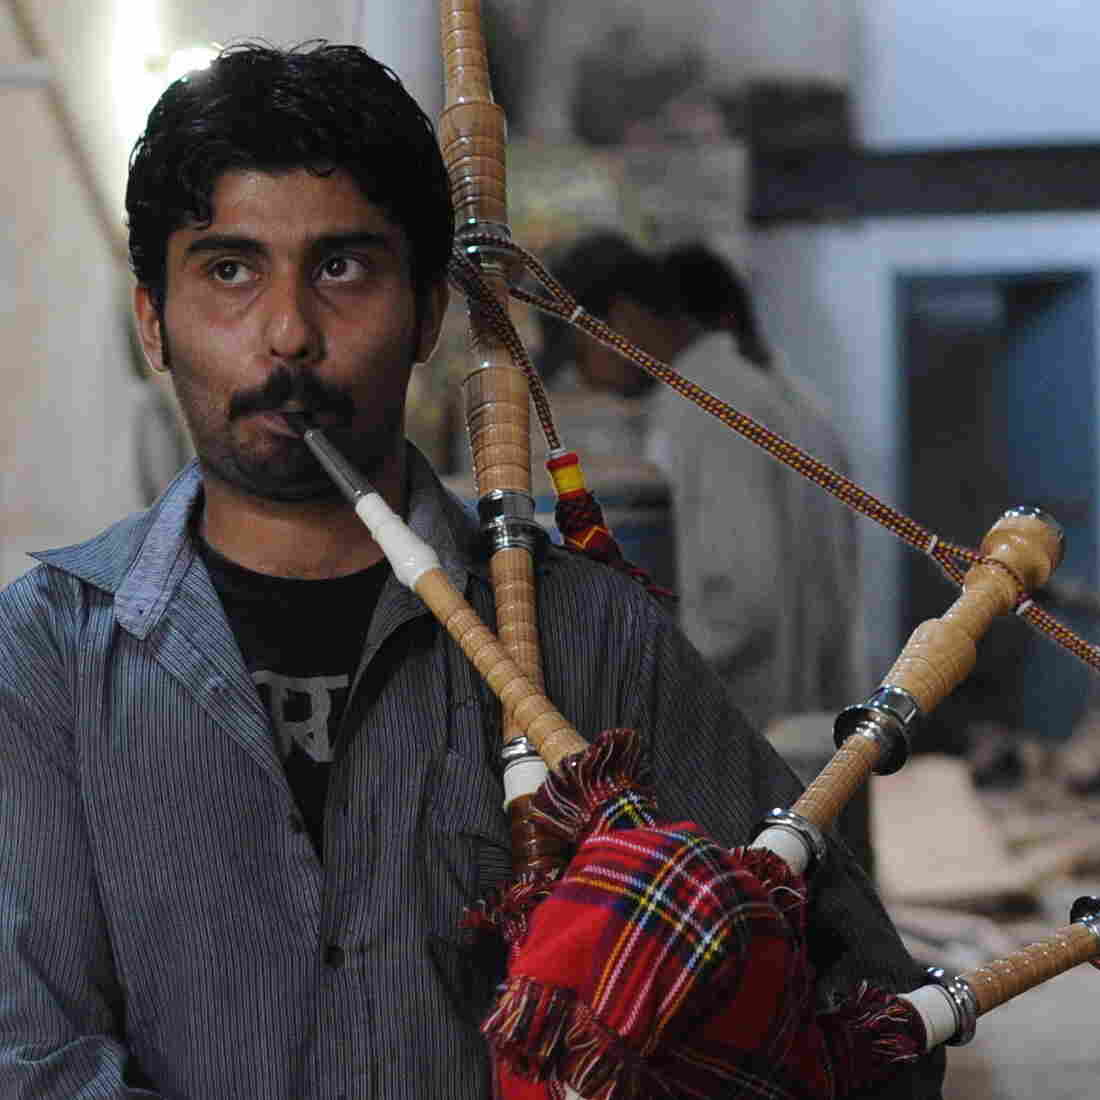 Ibrahim Ahmad, the son of the owner of the Imperial Bagpipe Manufacturing Co., tests a bagpipe at a factory in Sialkot, Pakistan. The Pakistani city is the largest producer of the instruments most commonly associated with Scotland.